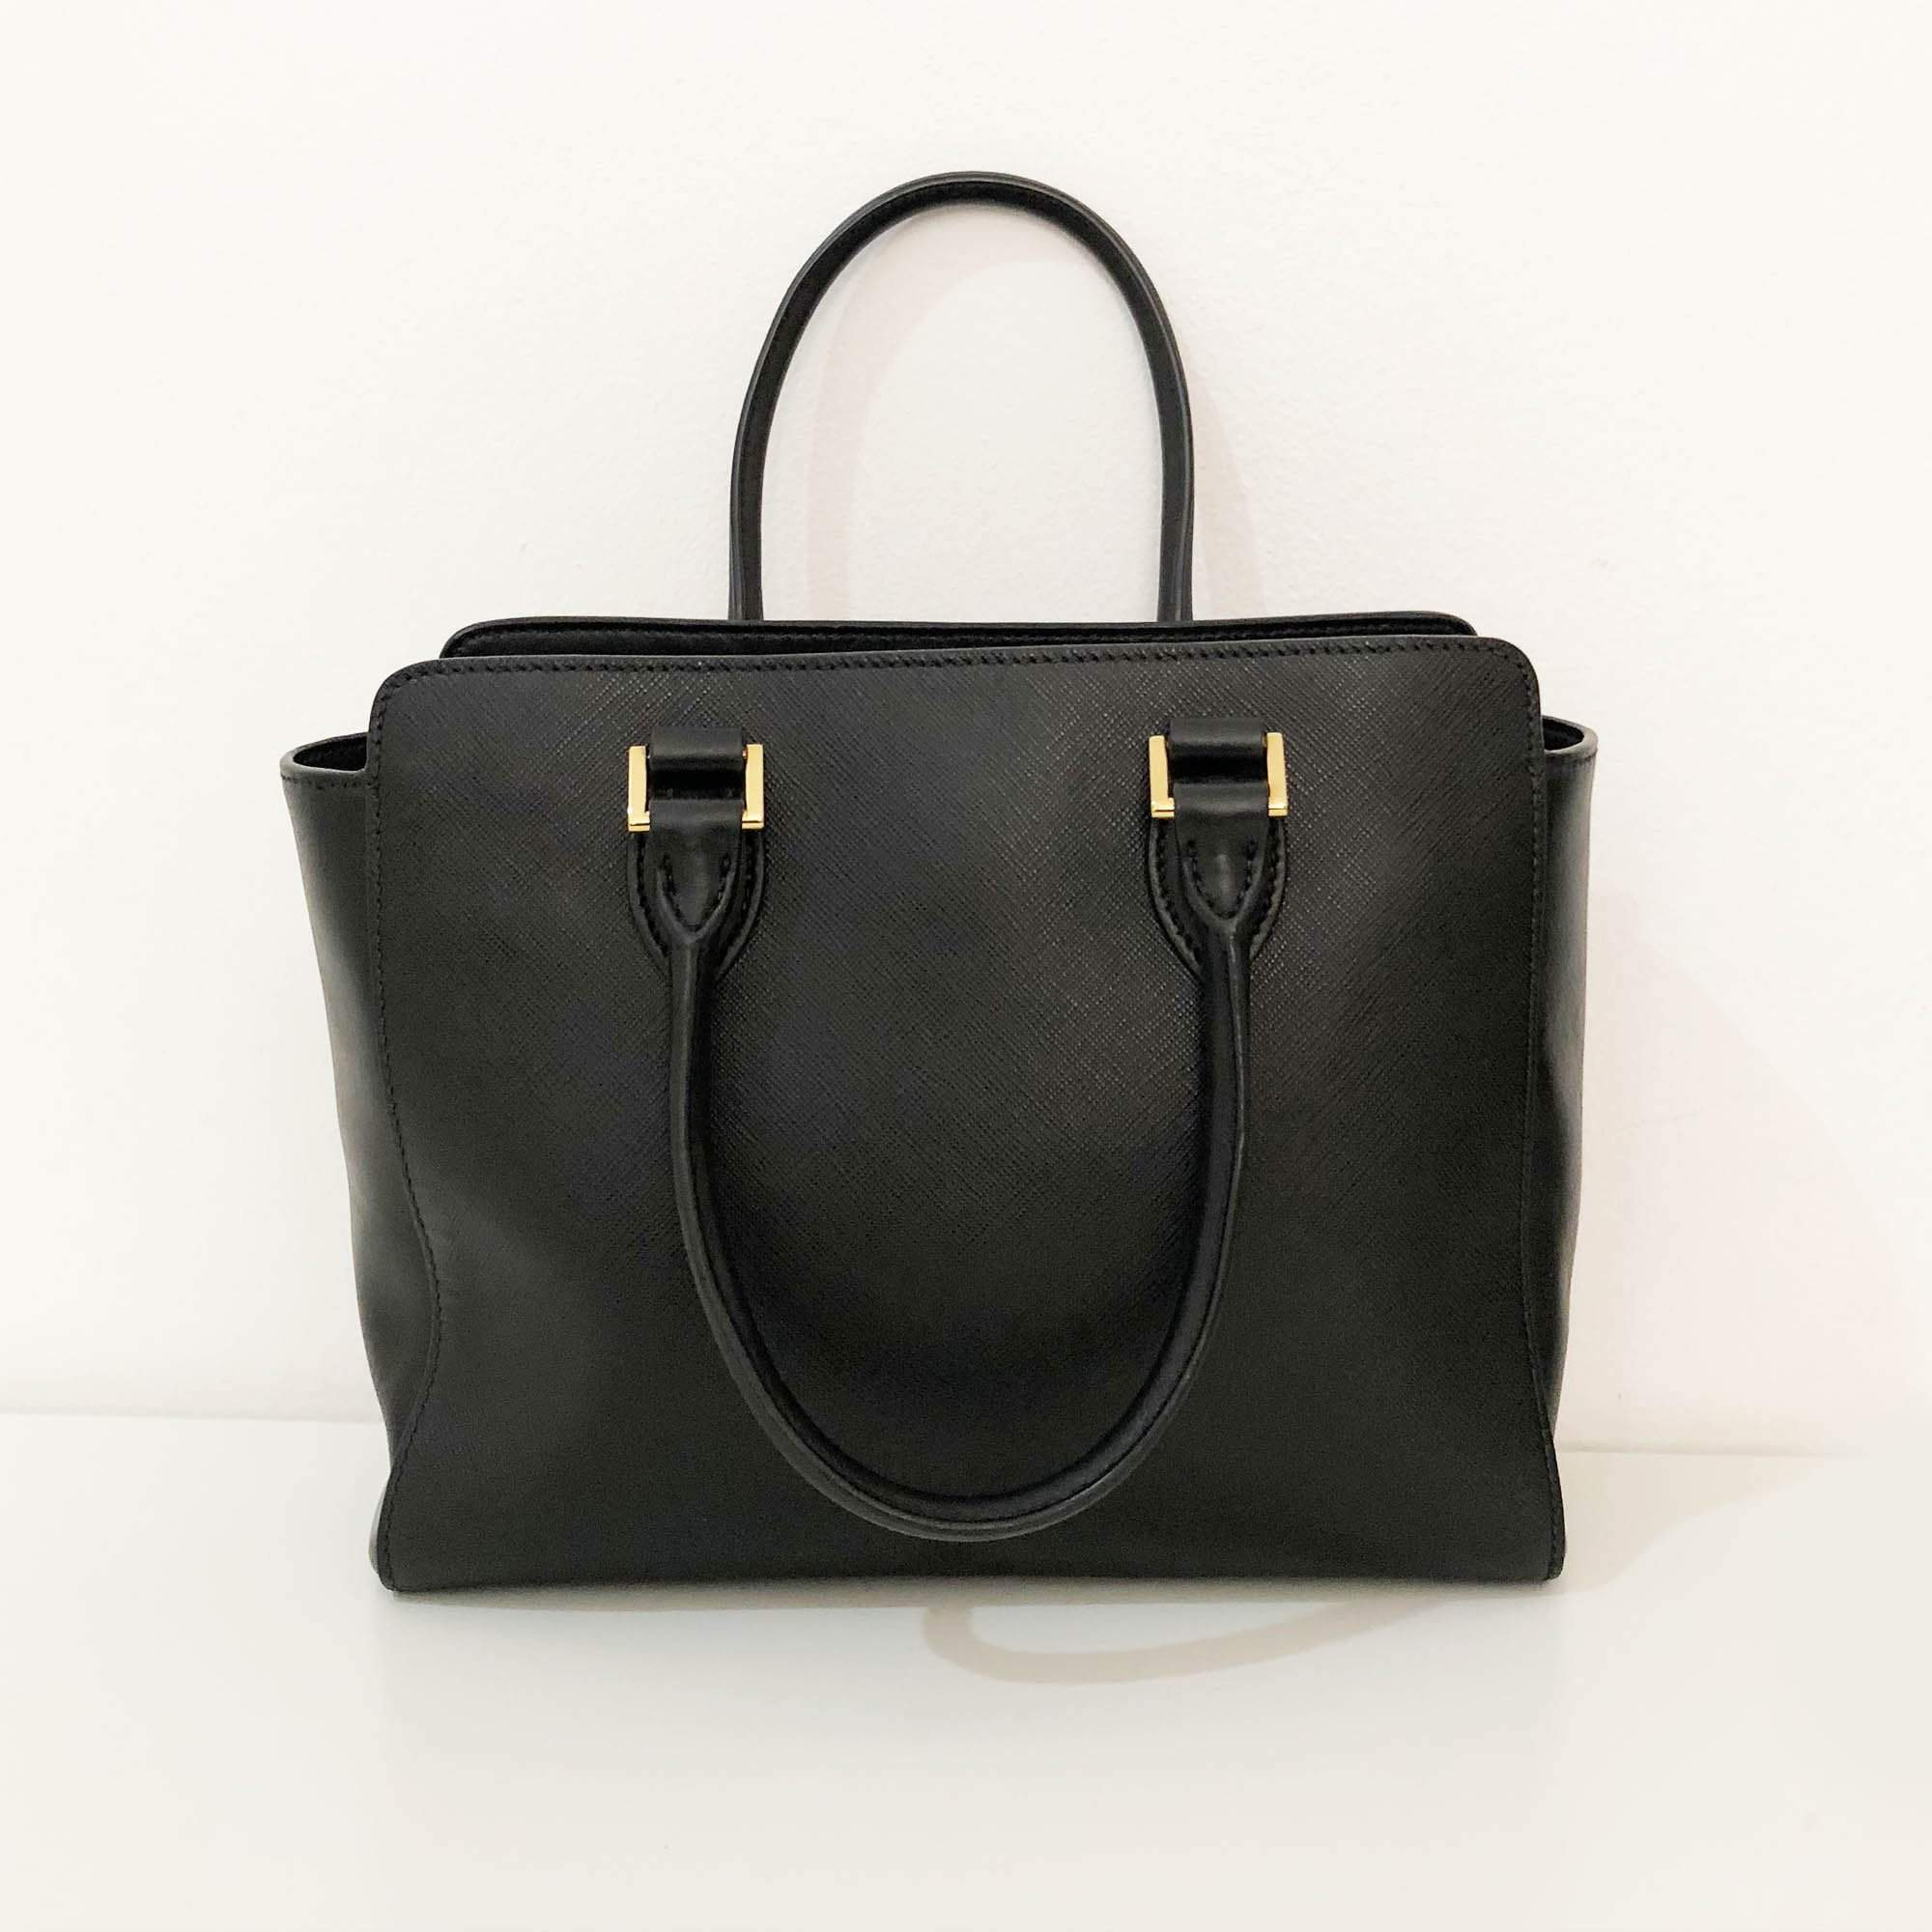 Prada Top Handle Leather Tote Bag